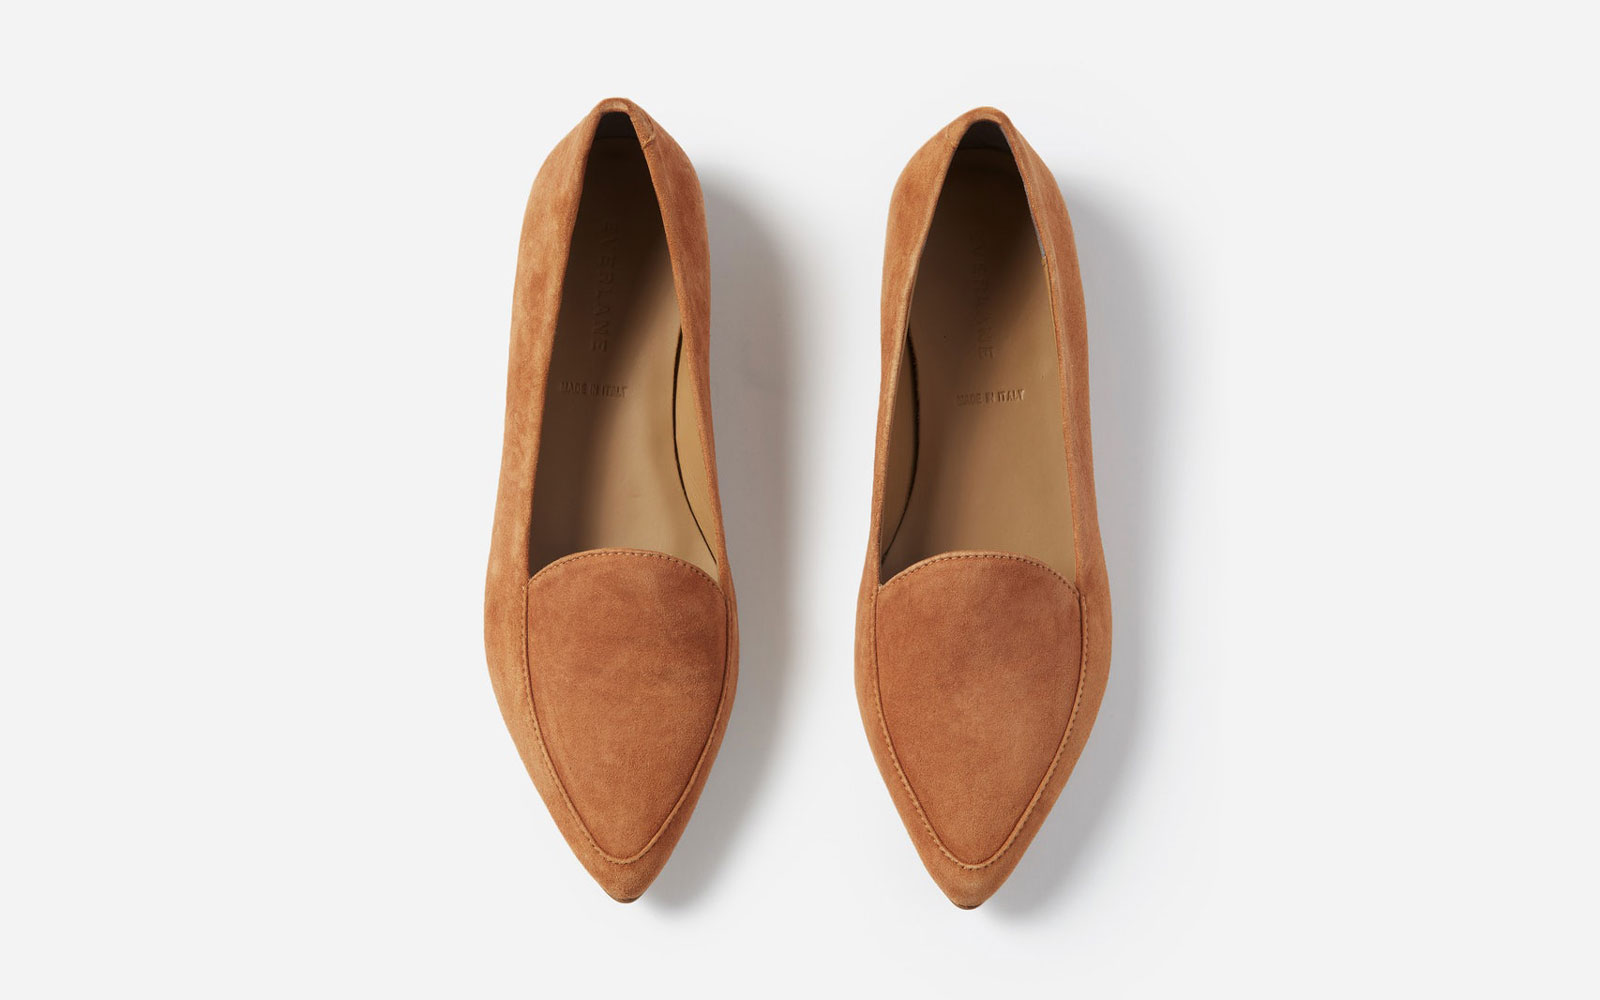 Everlane's pointed flats